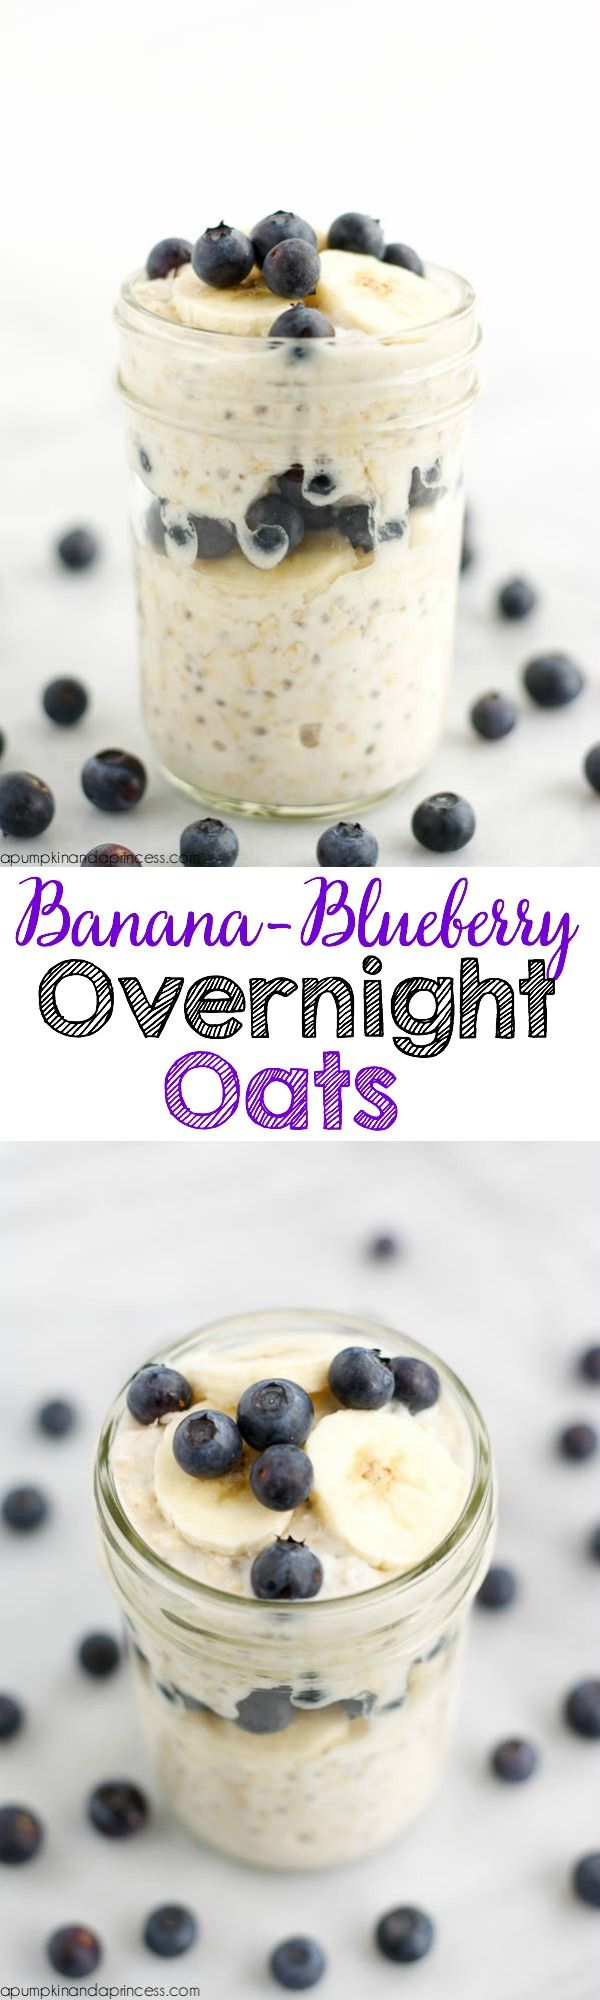 Banana Blueberry Overnight Oats